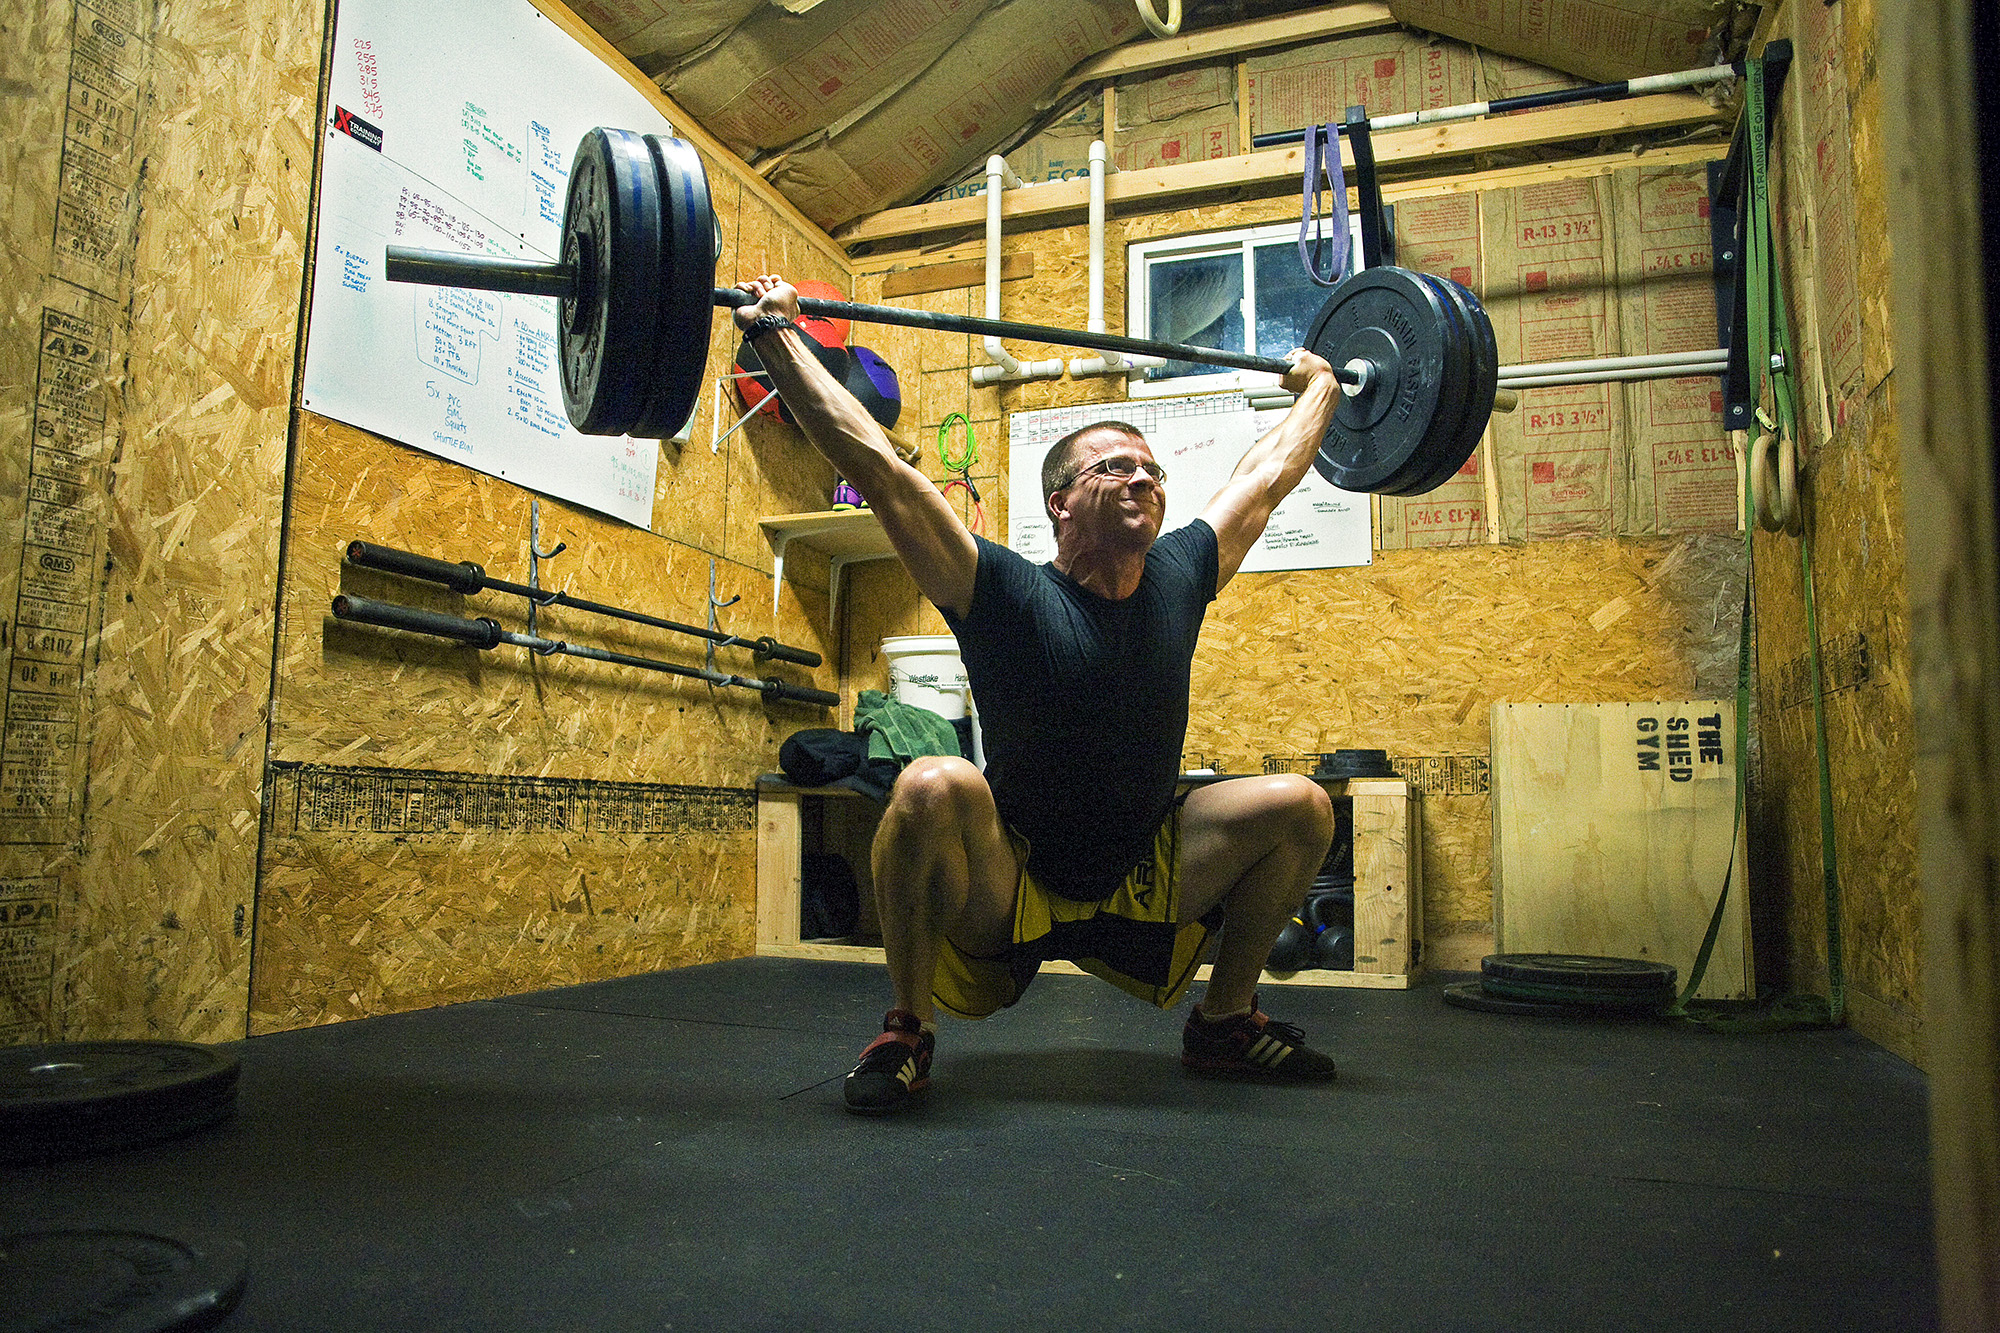 Home gym shed great idea love it outside ideas gym room at